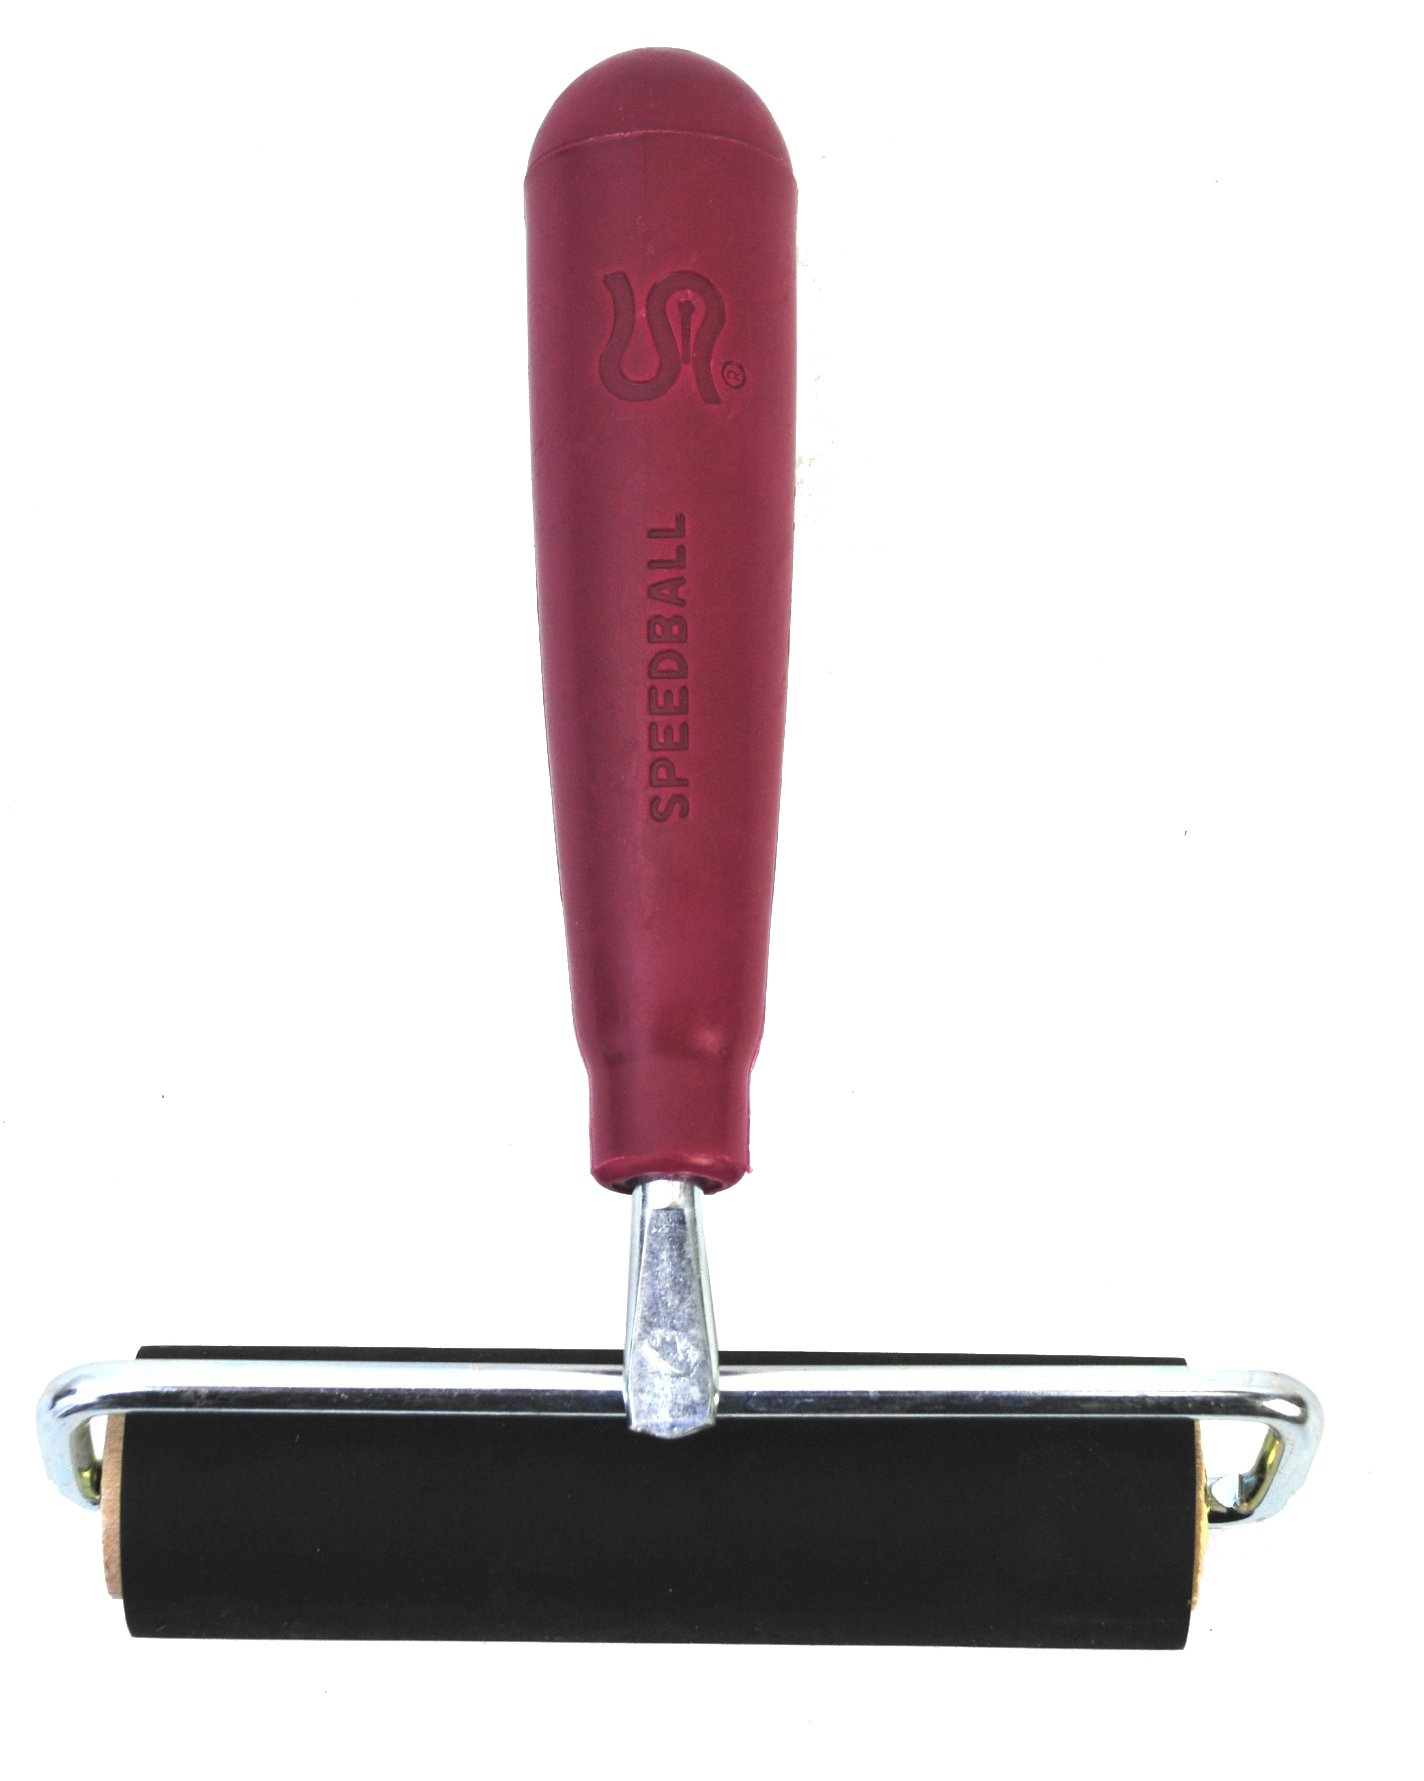 Speedball 4121 Deluxe Hard Rubber Brayer - 80 Durometer Roller With Wire Frame - 4 Inches by Speedball